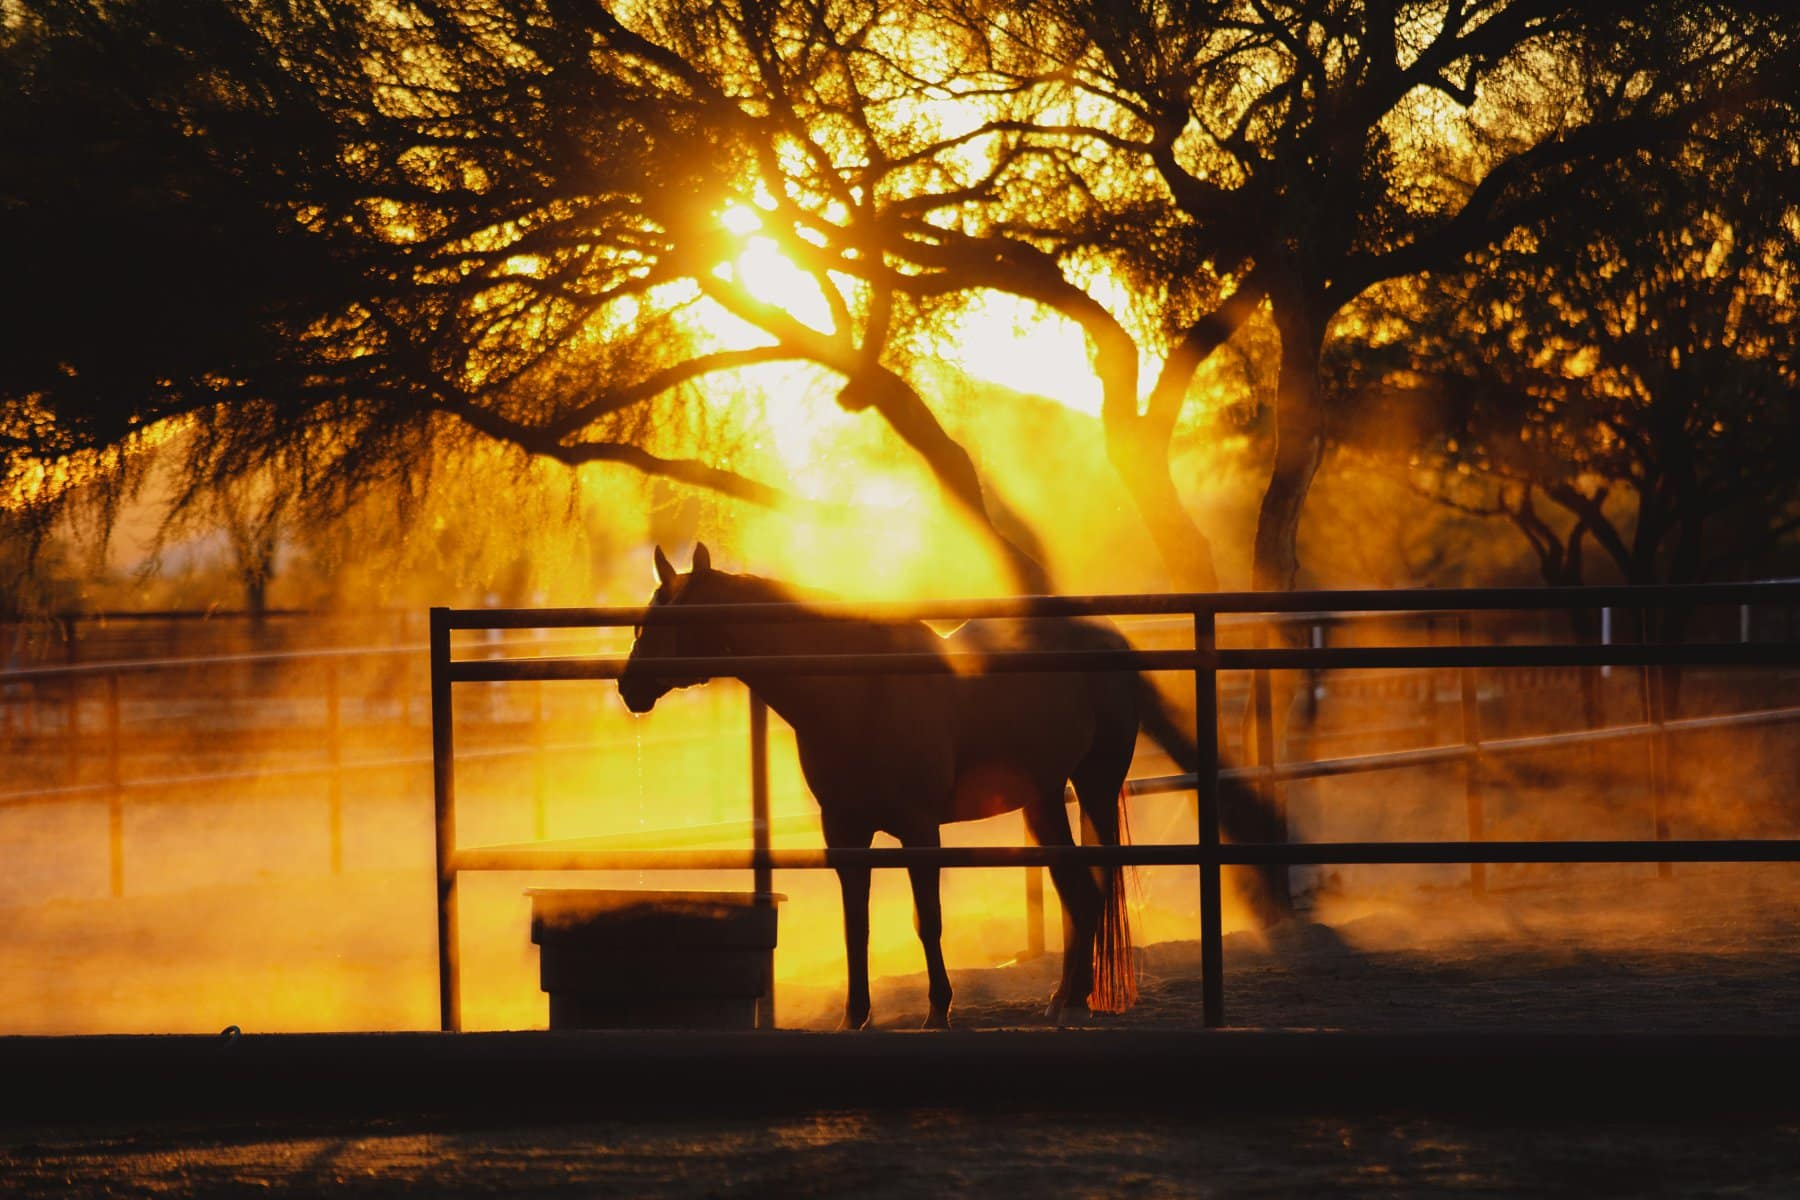 horse drinking water in dusty Arizona sunset light